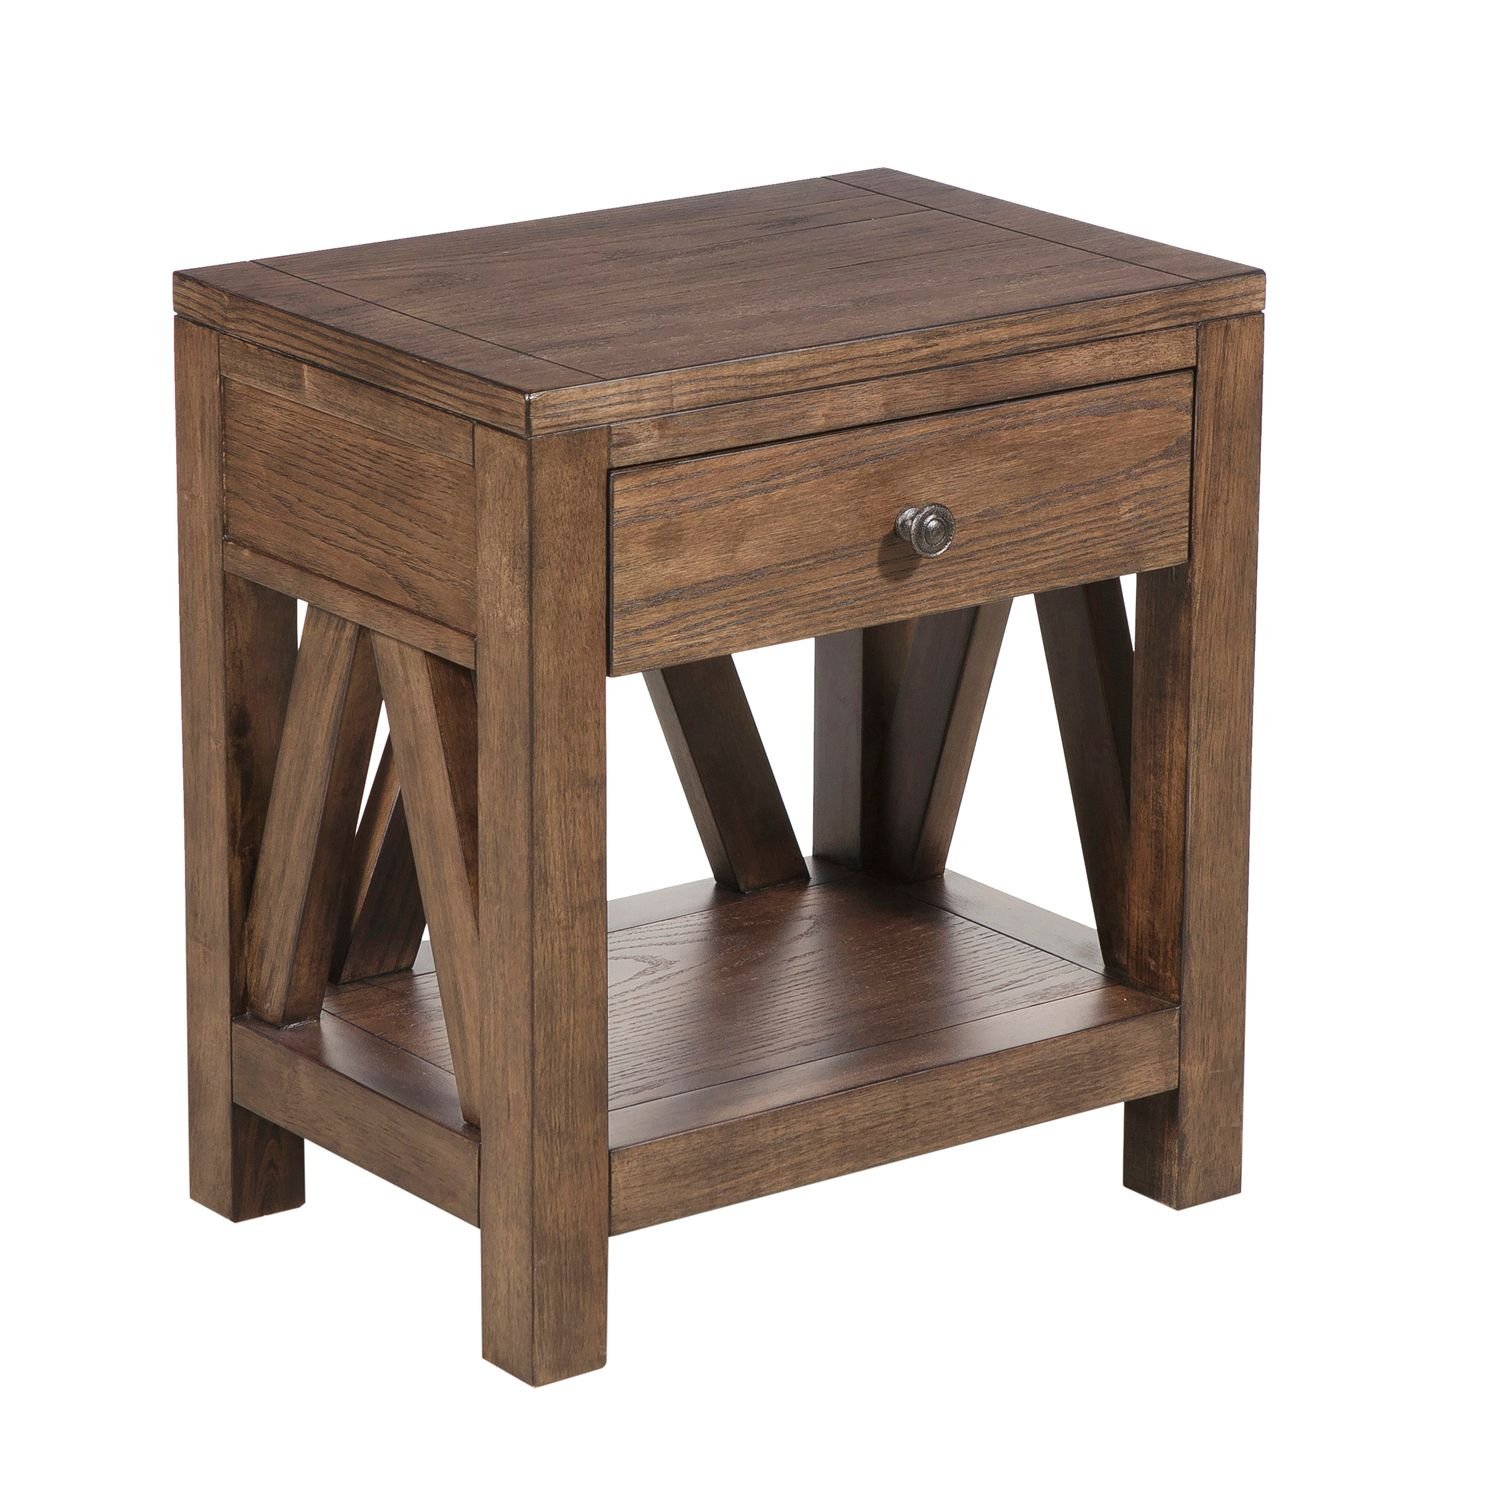 farmhouse style side table pier imports small accent tables one decorative pieces for dining tabletop gas grill best coffee living rooms decoration drawing room furniture italian